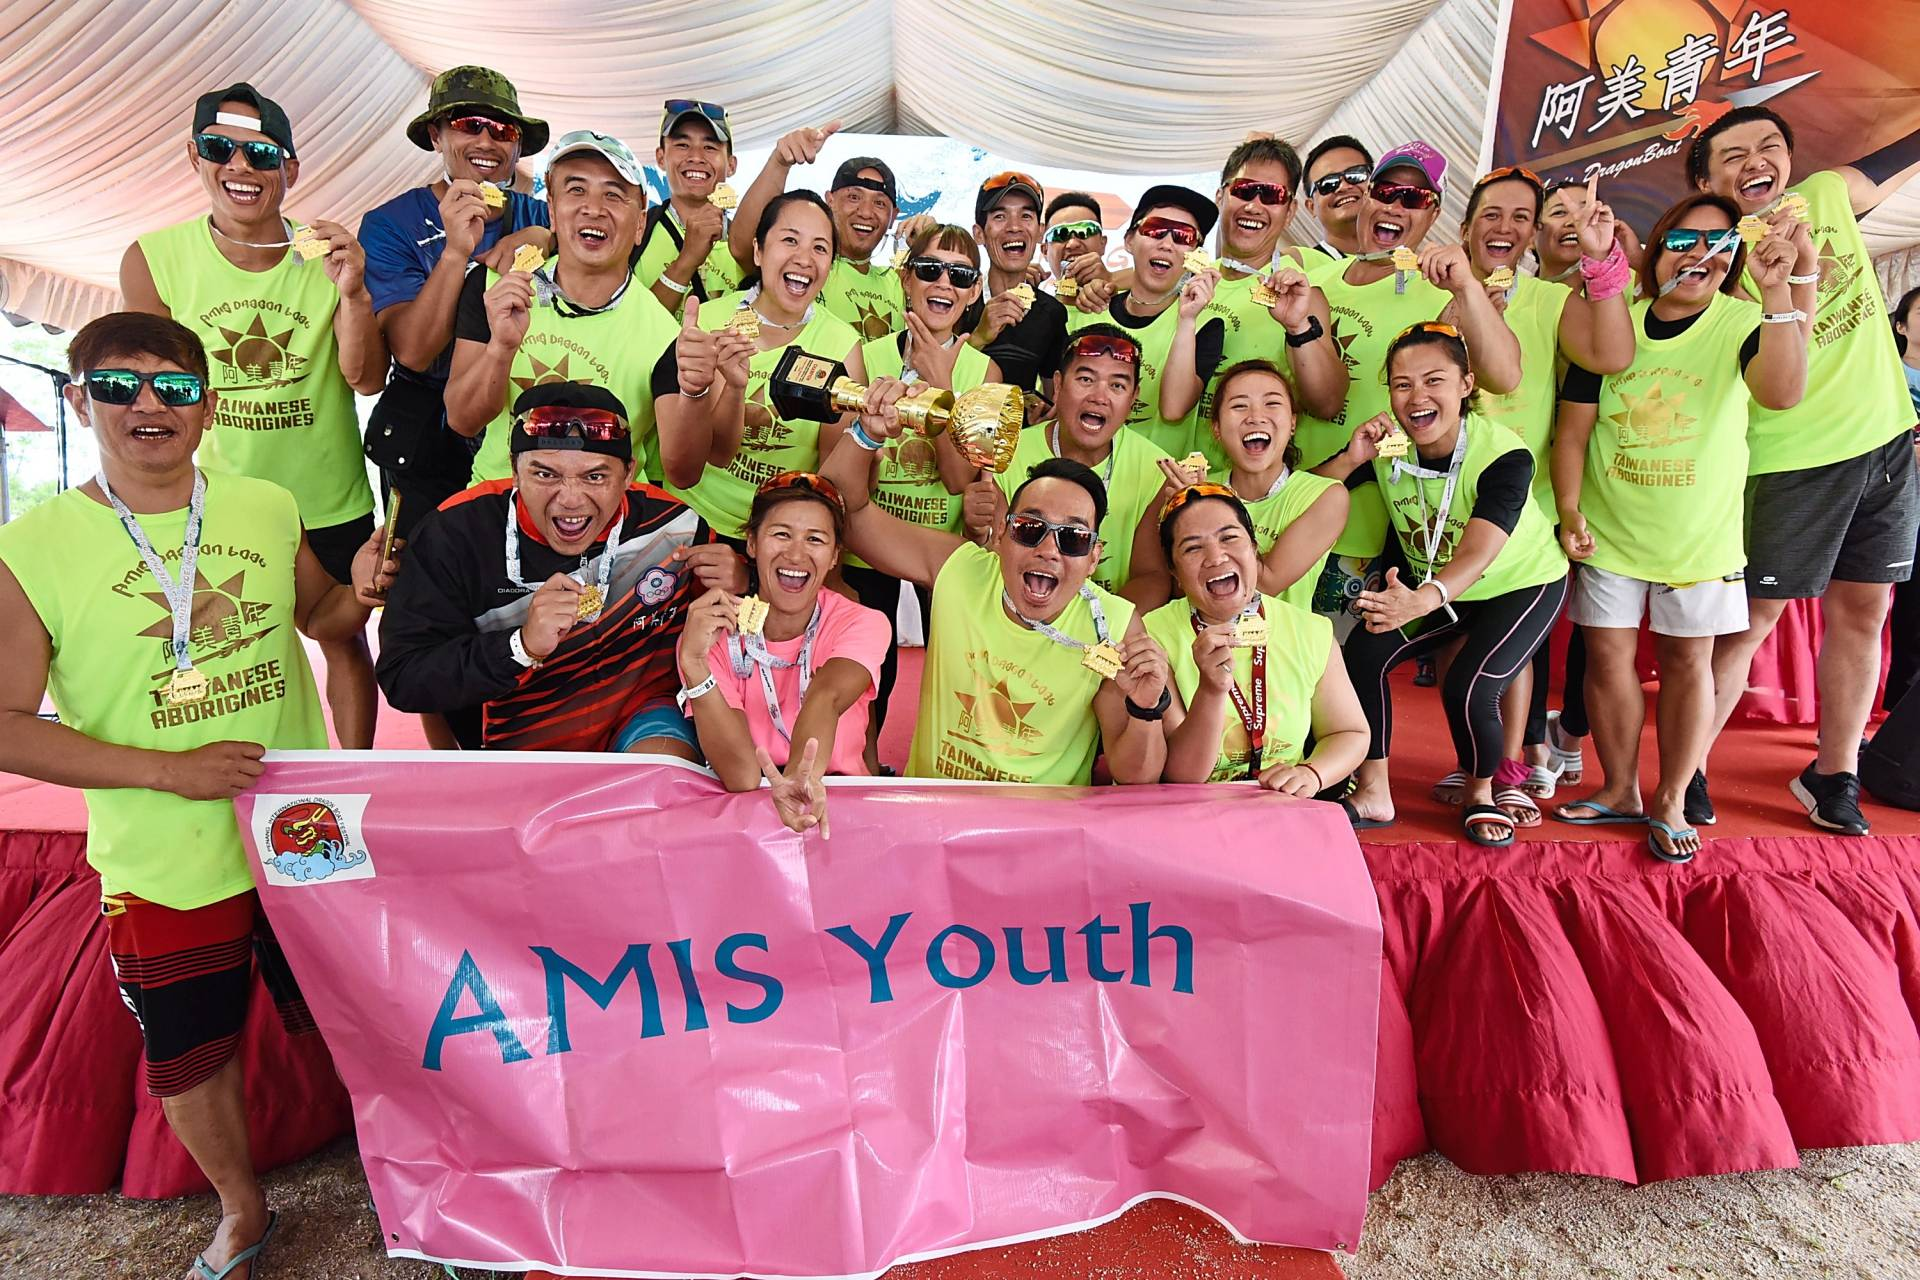 Tomas (holding trophy) and his Taiwan Amis Youth teammates celebrating their victory in the 450m International Premier Mixed 22 (rowers) category.